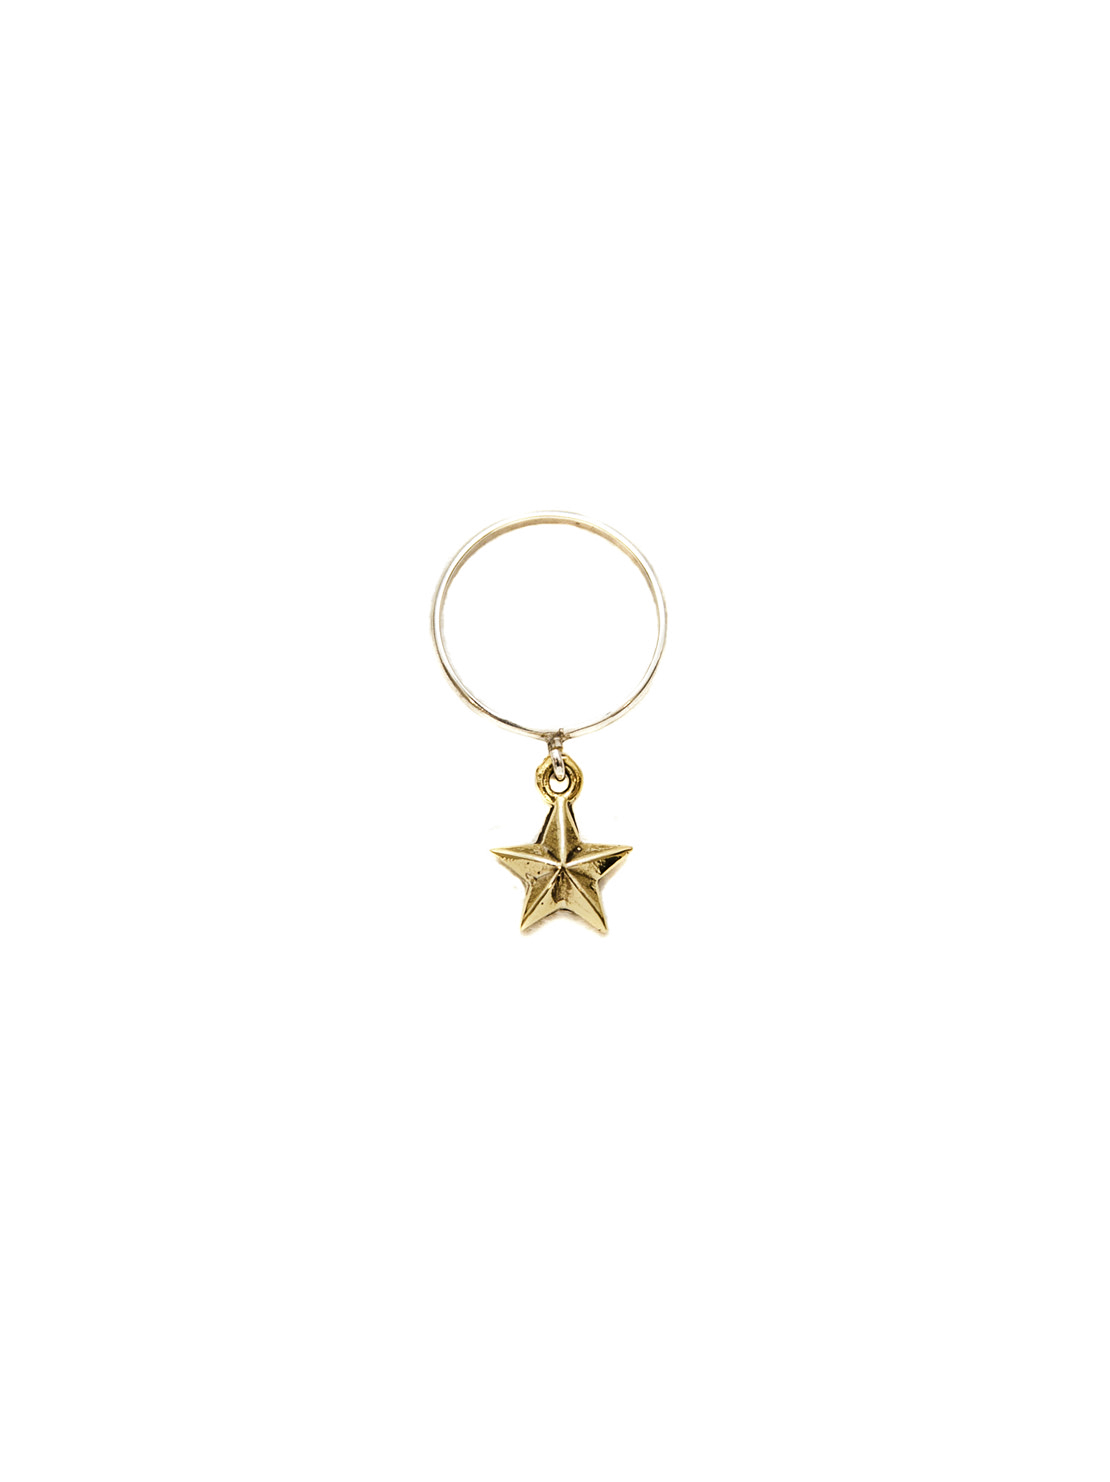 Silver Stack Ring With Brass Star